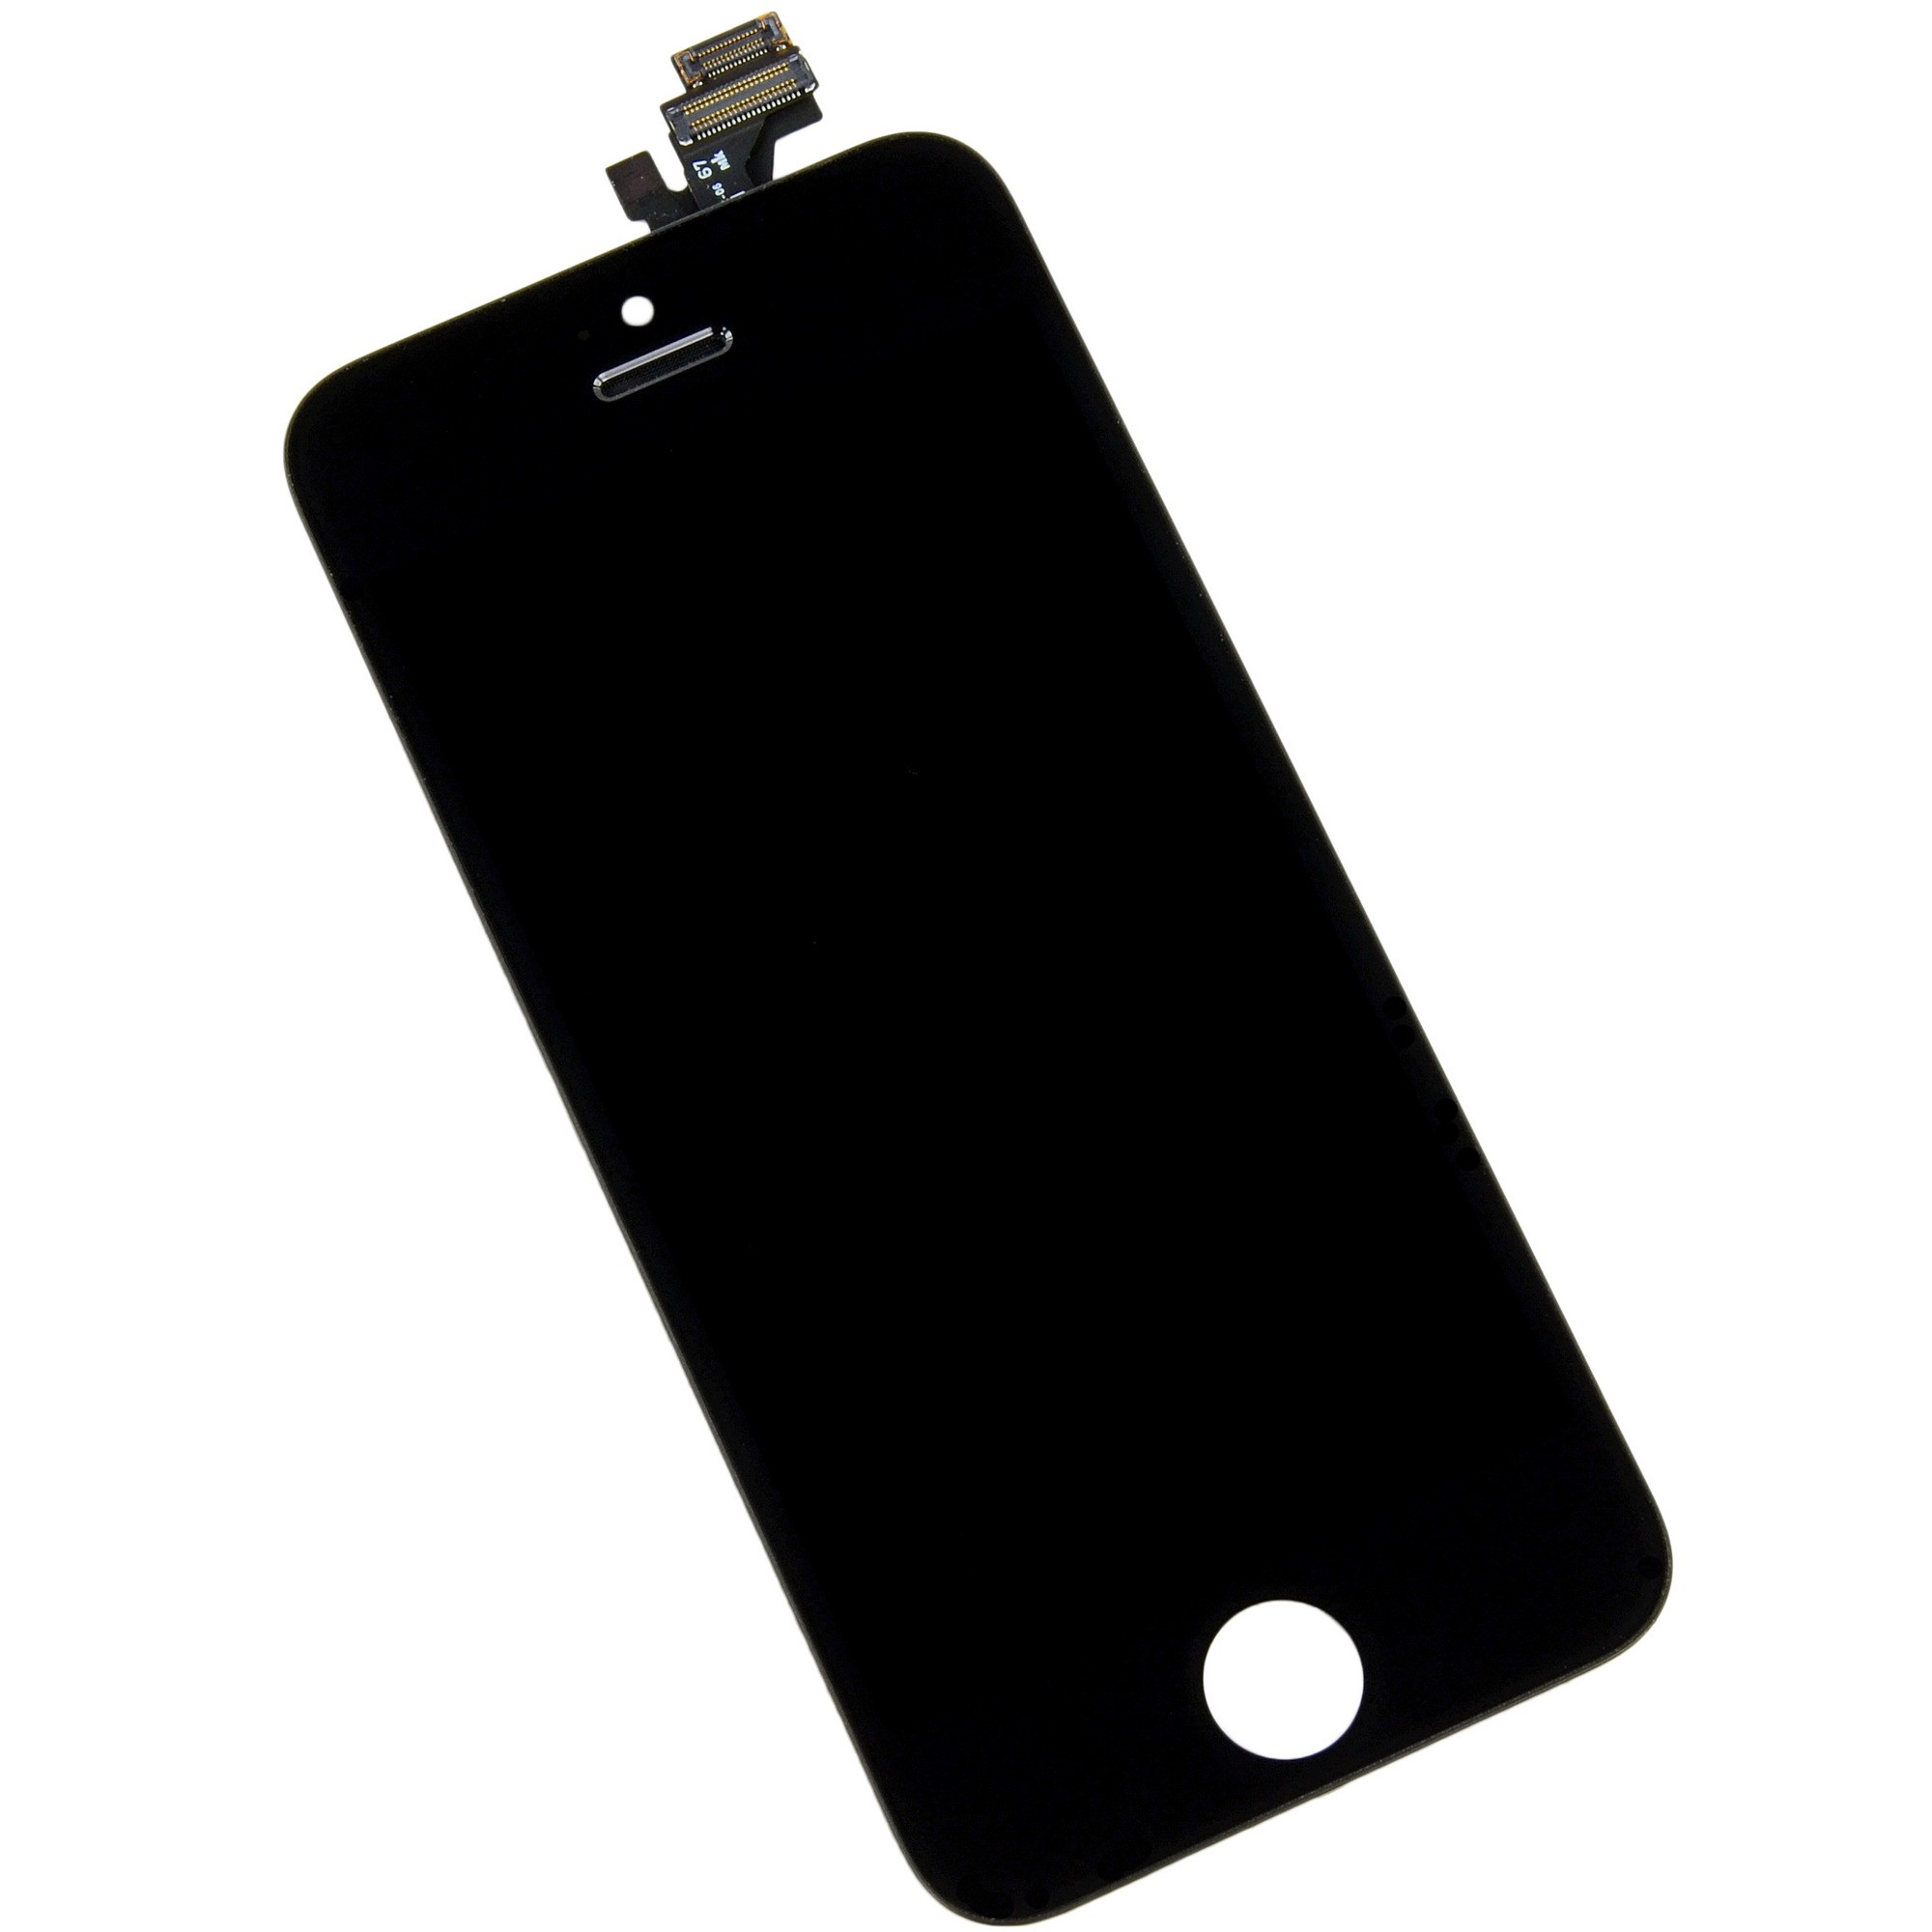 iPhone 5 Screen Replacement, IF118-000-1